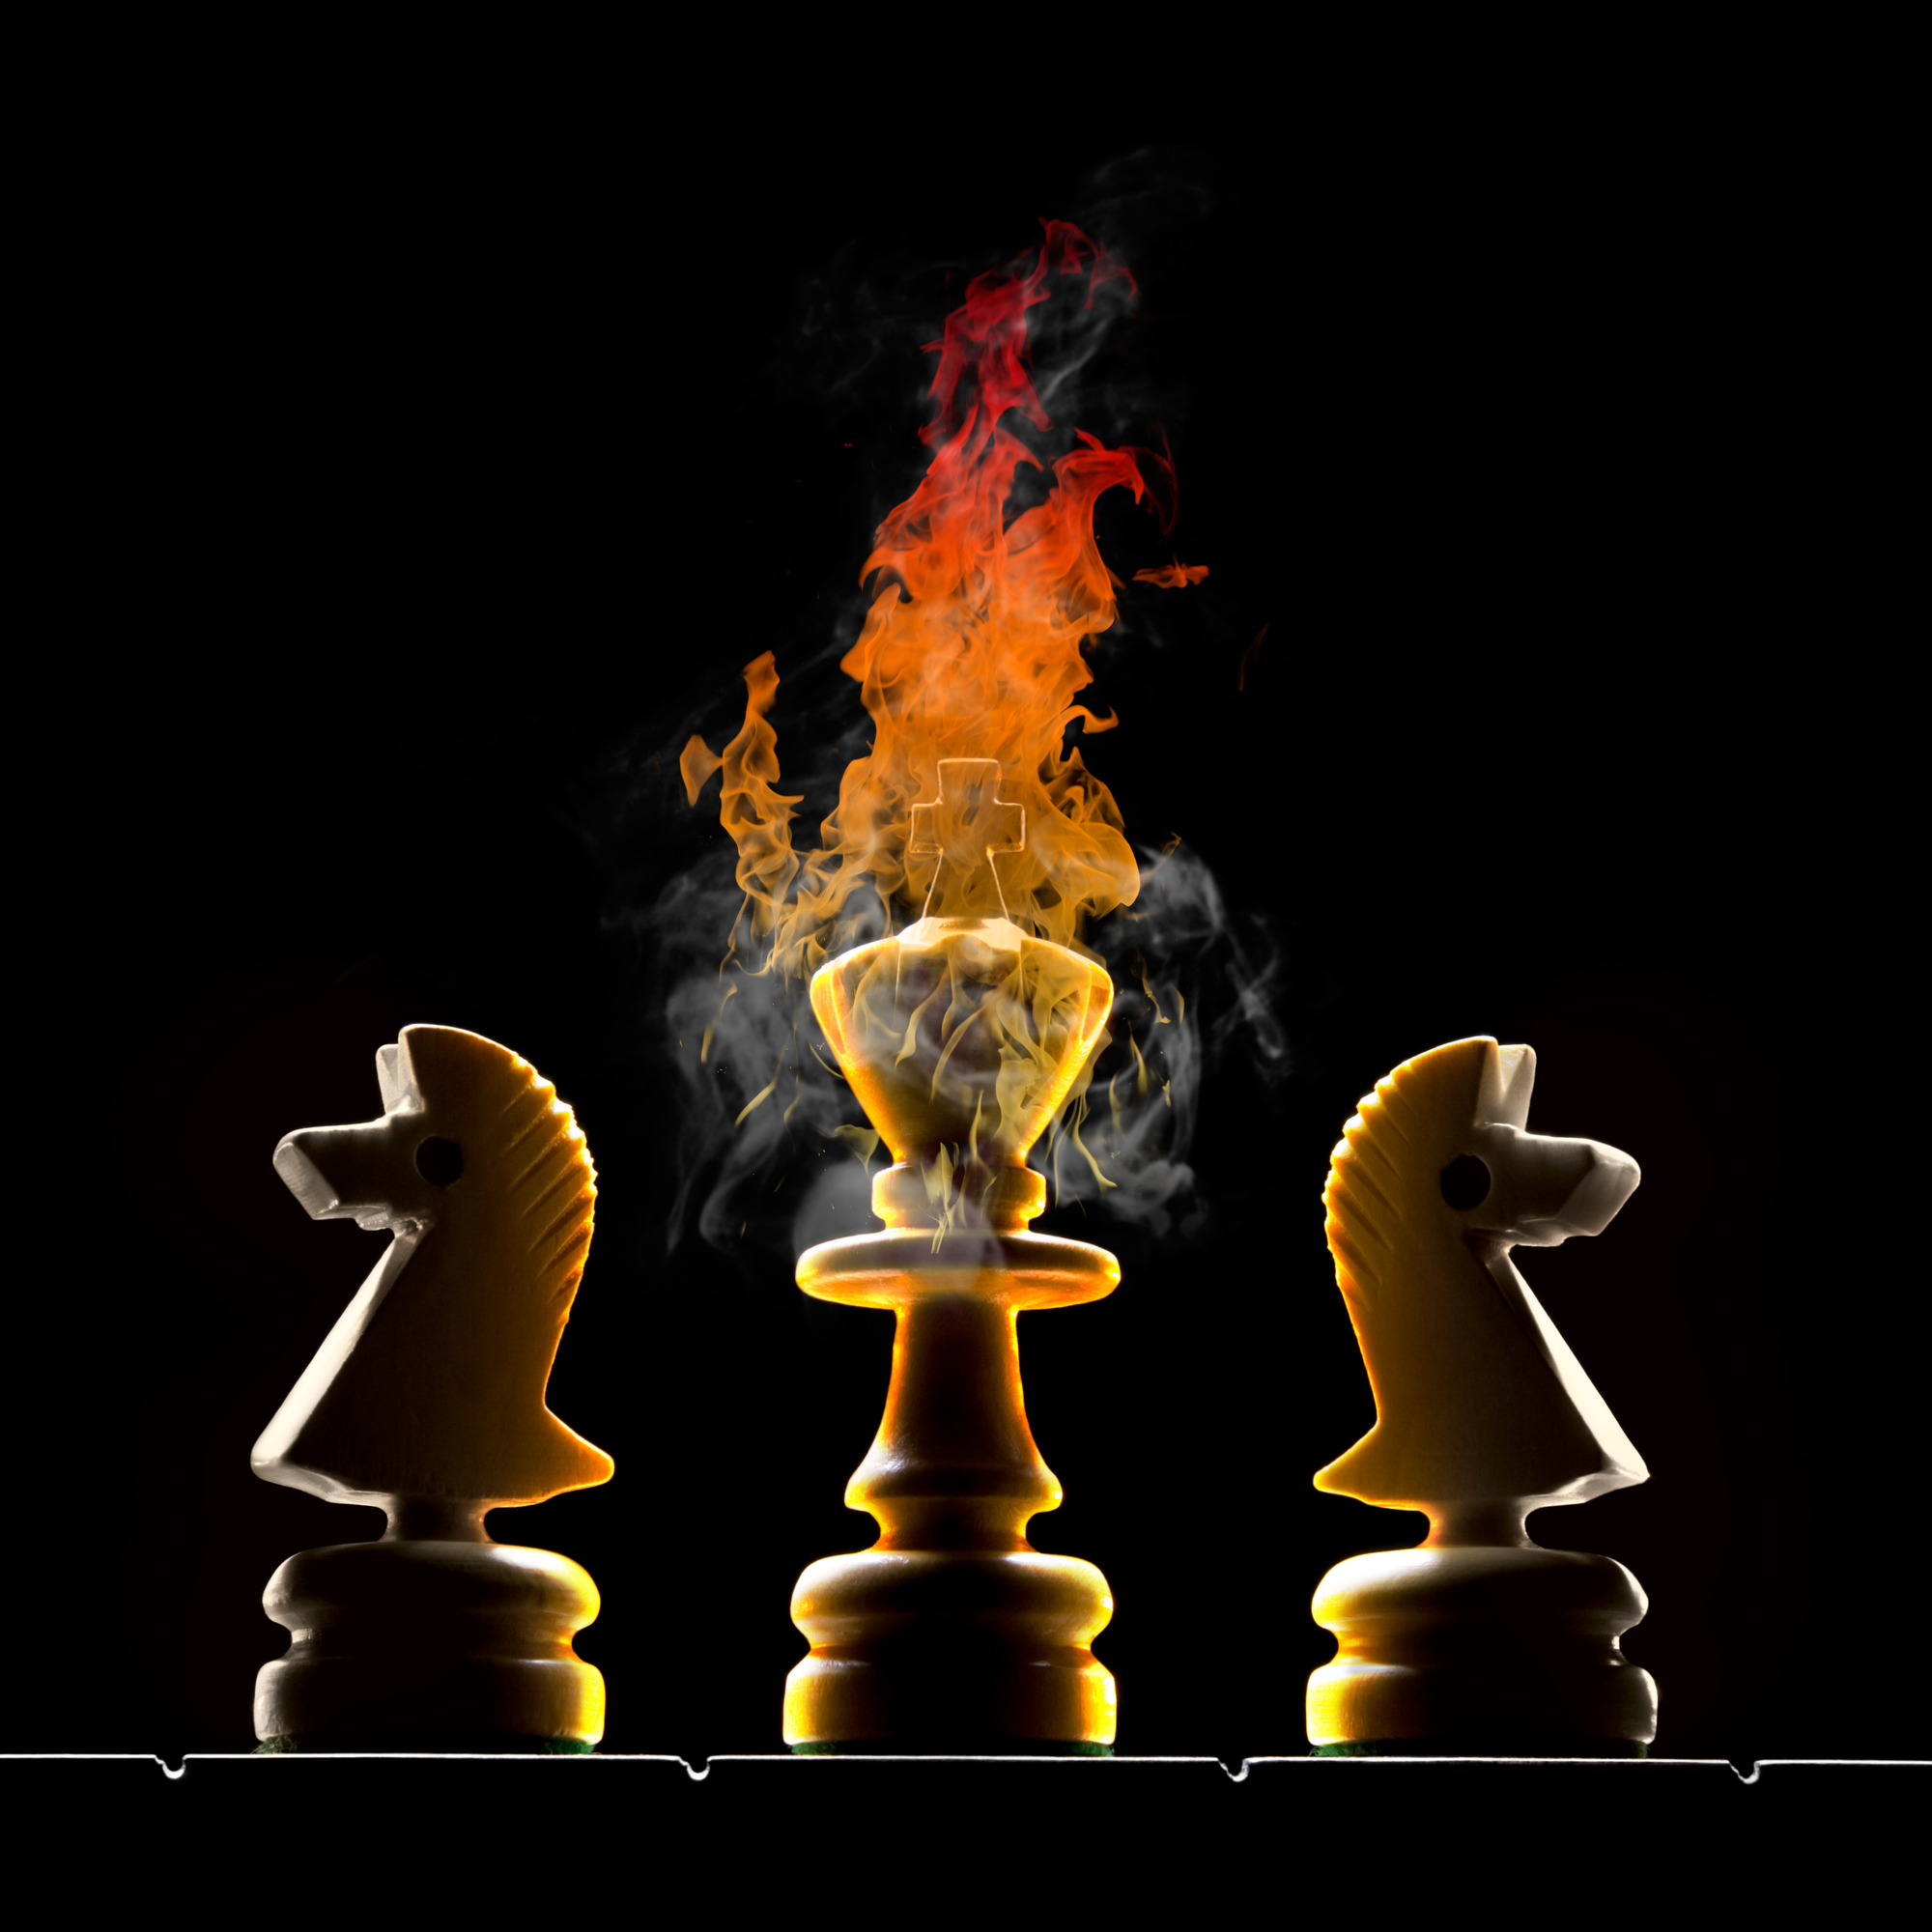 Chessmen (king and two horses). King burns on a black background.